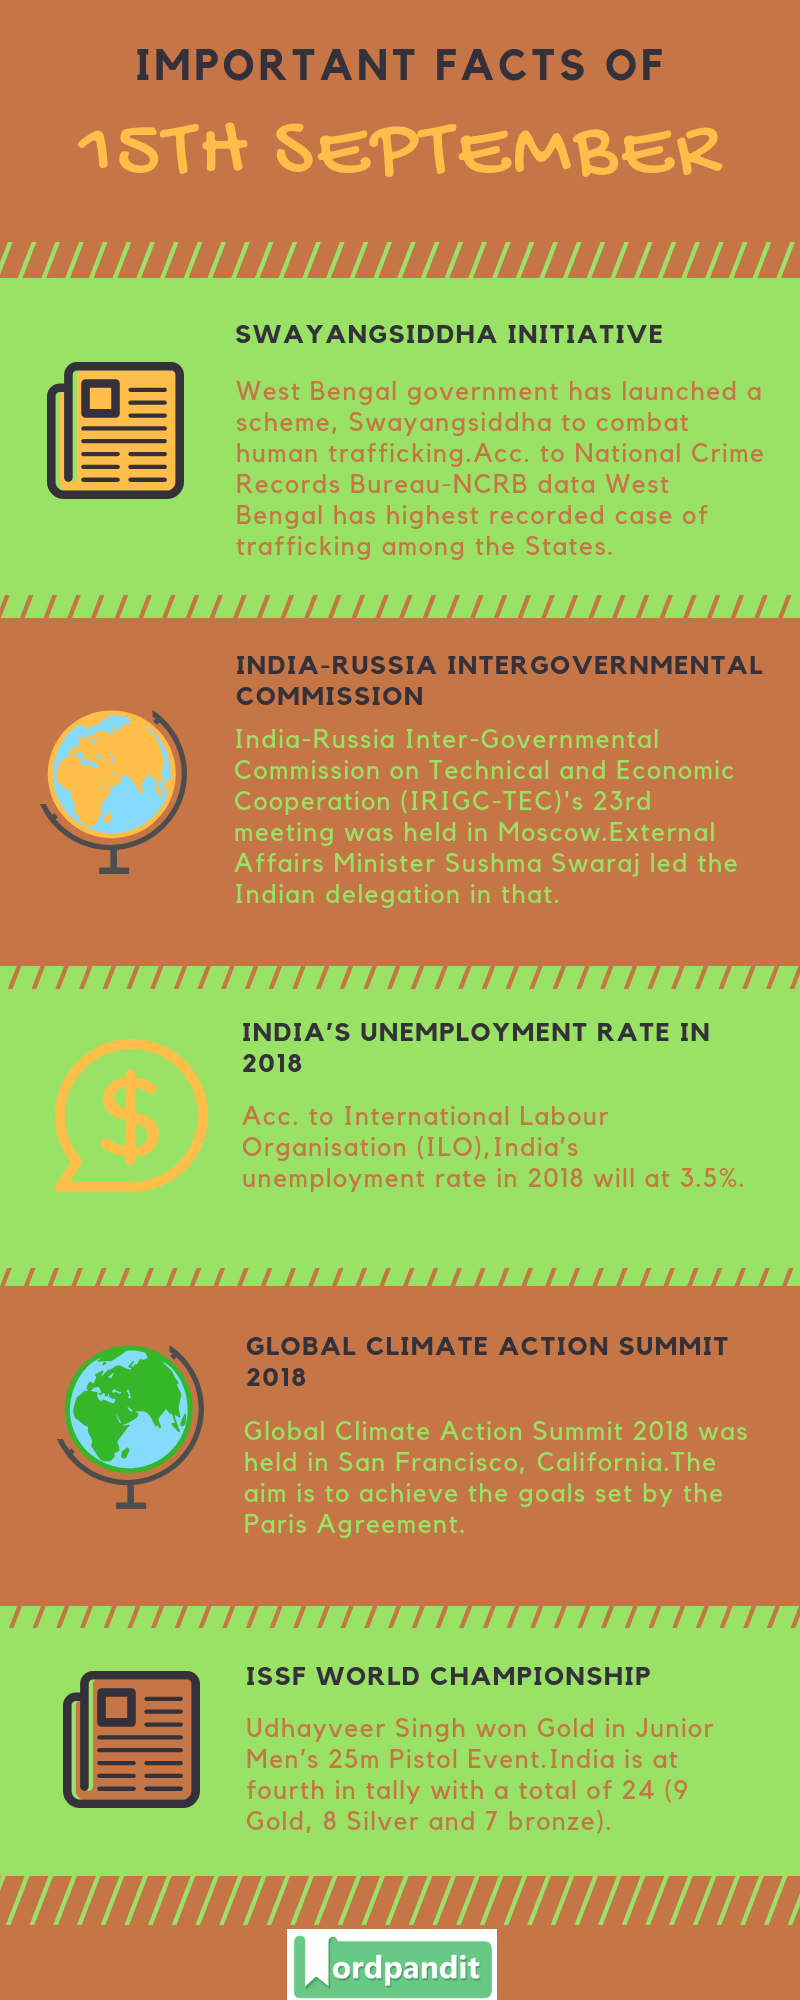 Daily Current Affairs 15 September 2018 Current Affairs Quiz 15 September 2018 Current Affairs Infographic